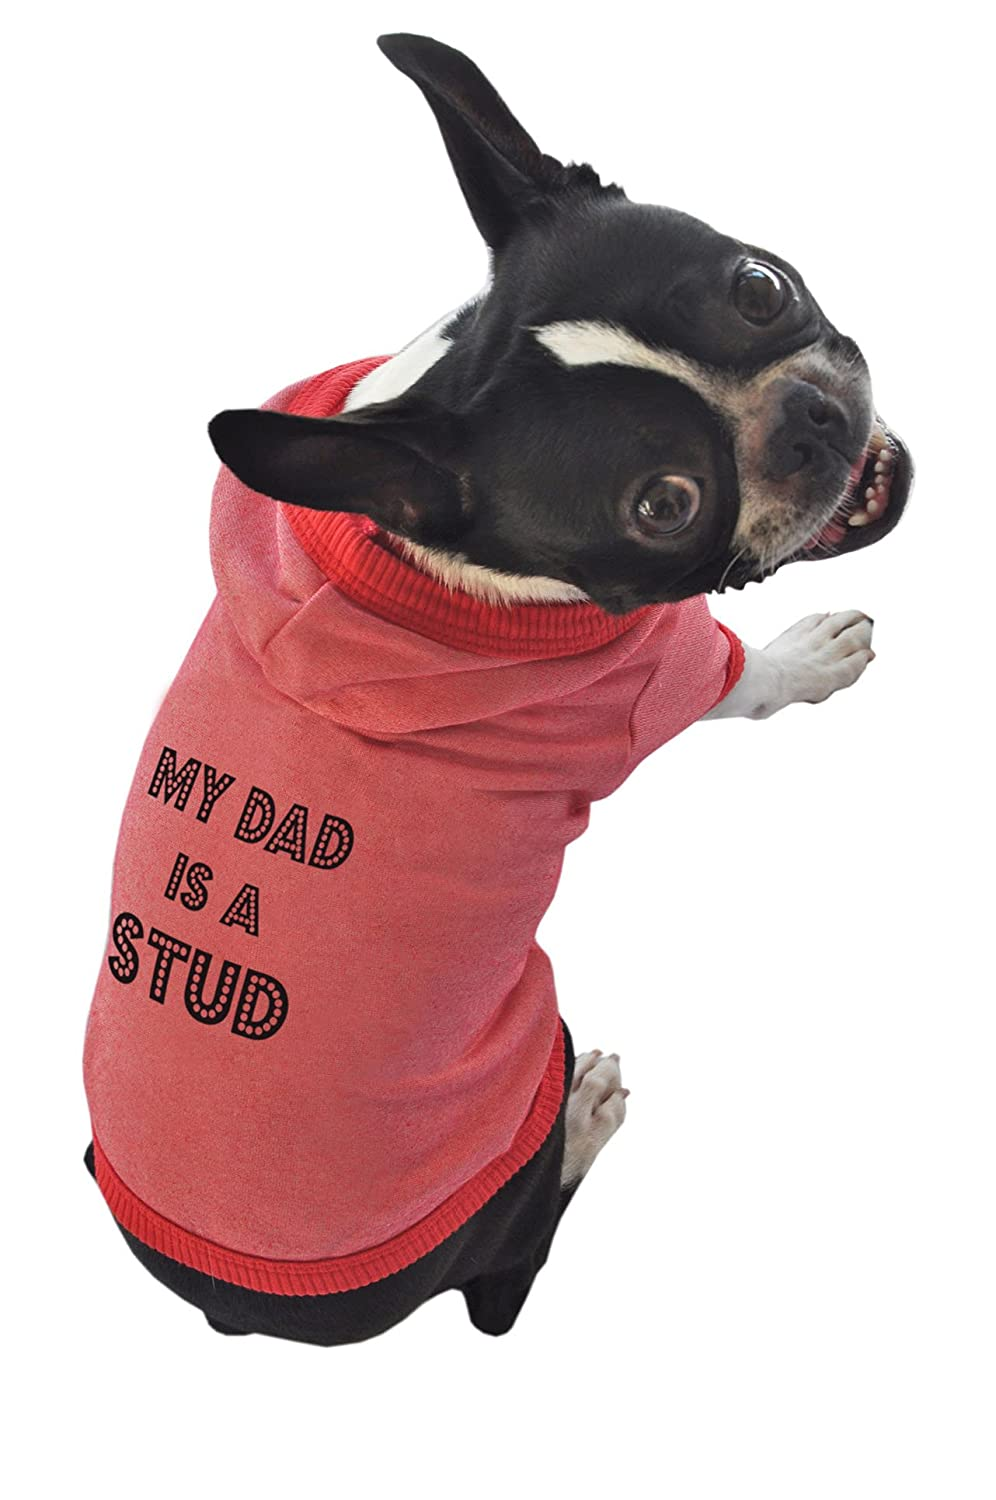 Ruff Ruff and Meow Dog Hoodie, My Dad is a Stud, Red, Large